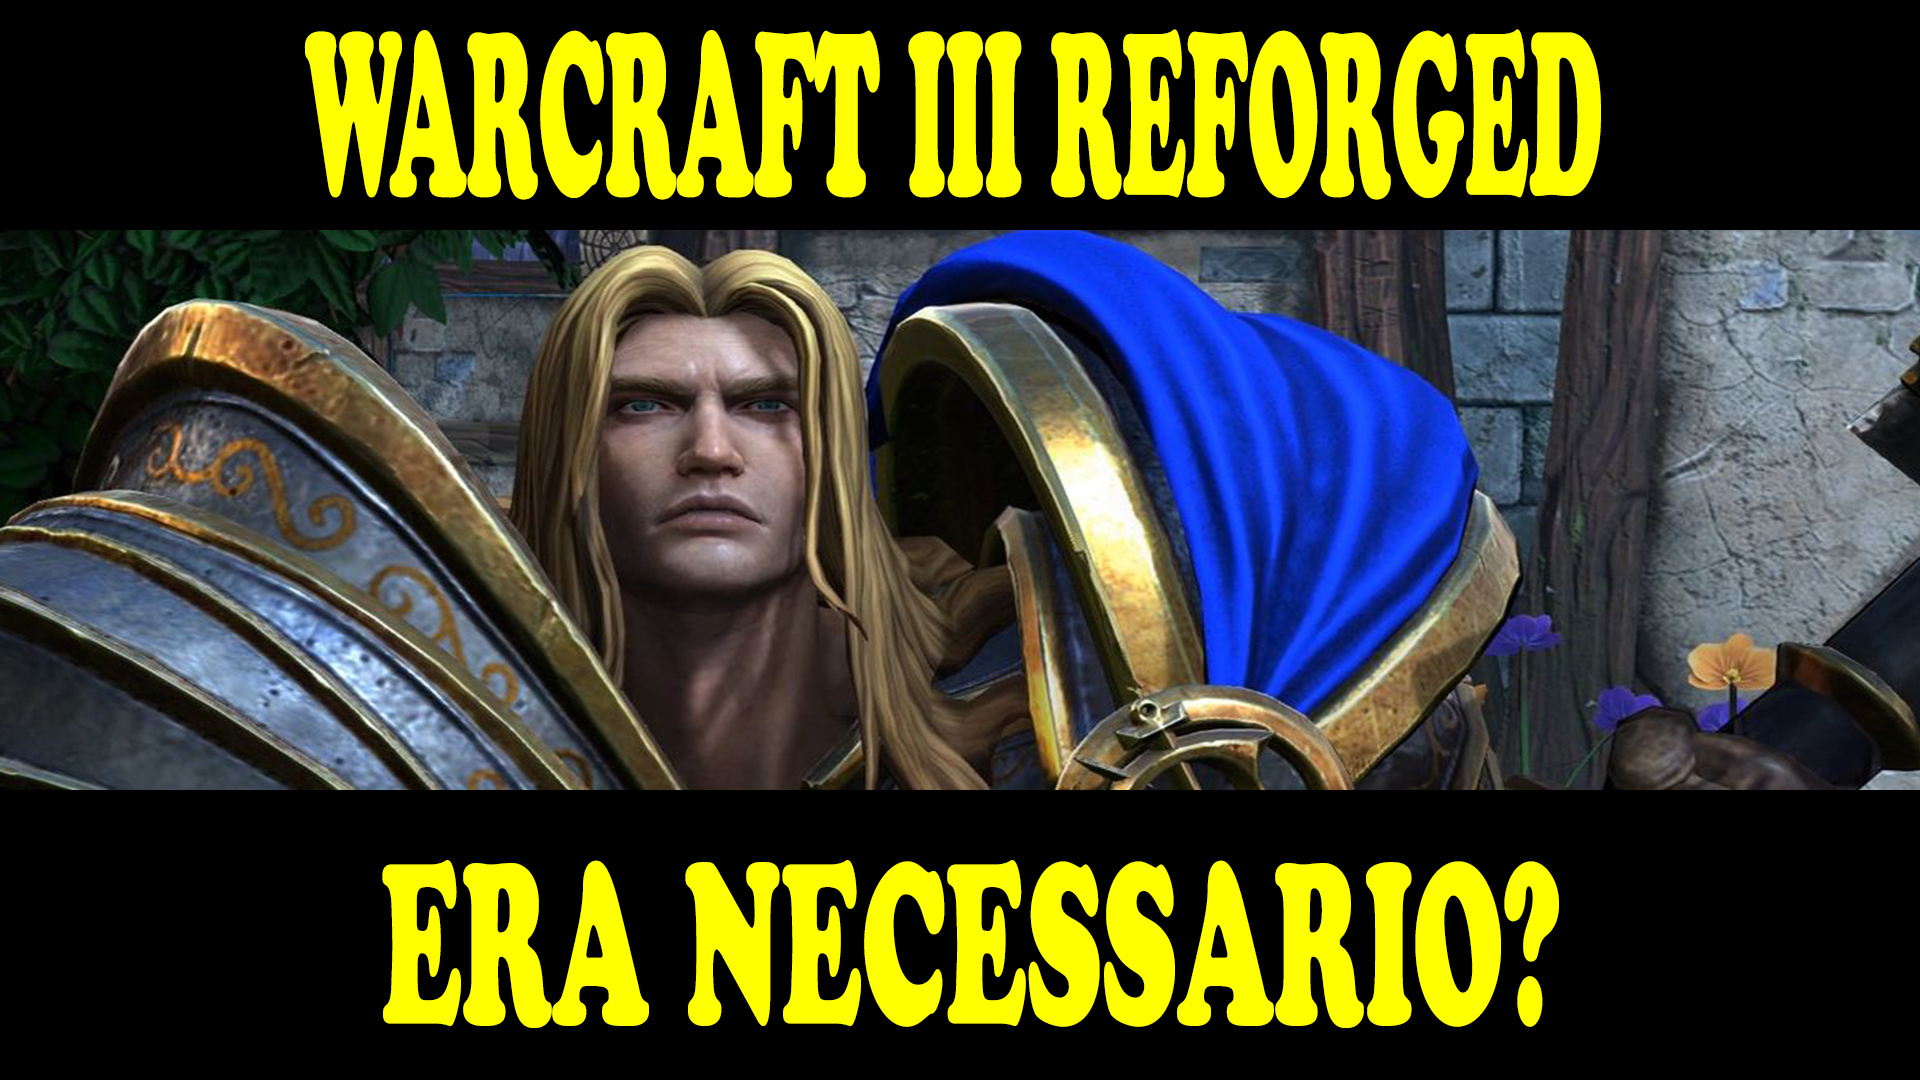 warcraft-3-reforged-era-necessario